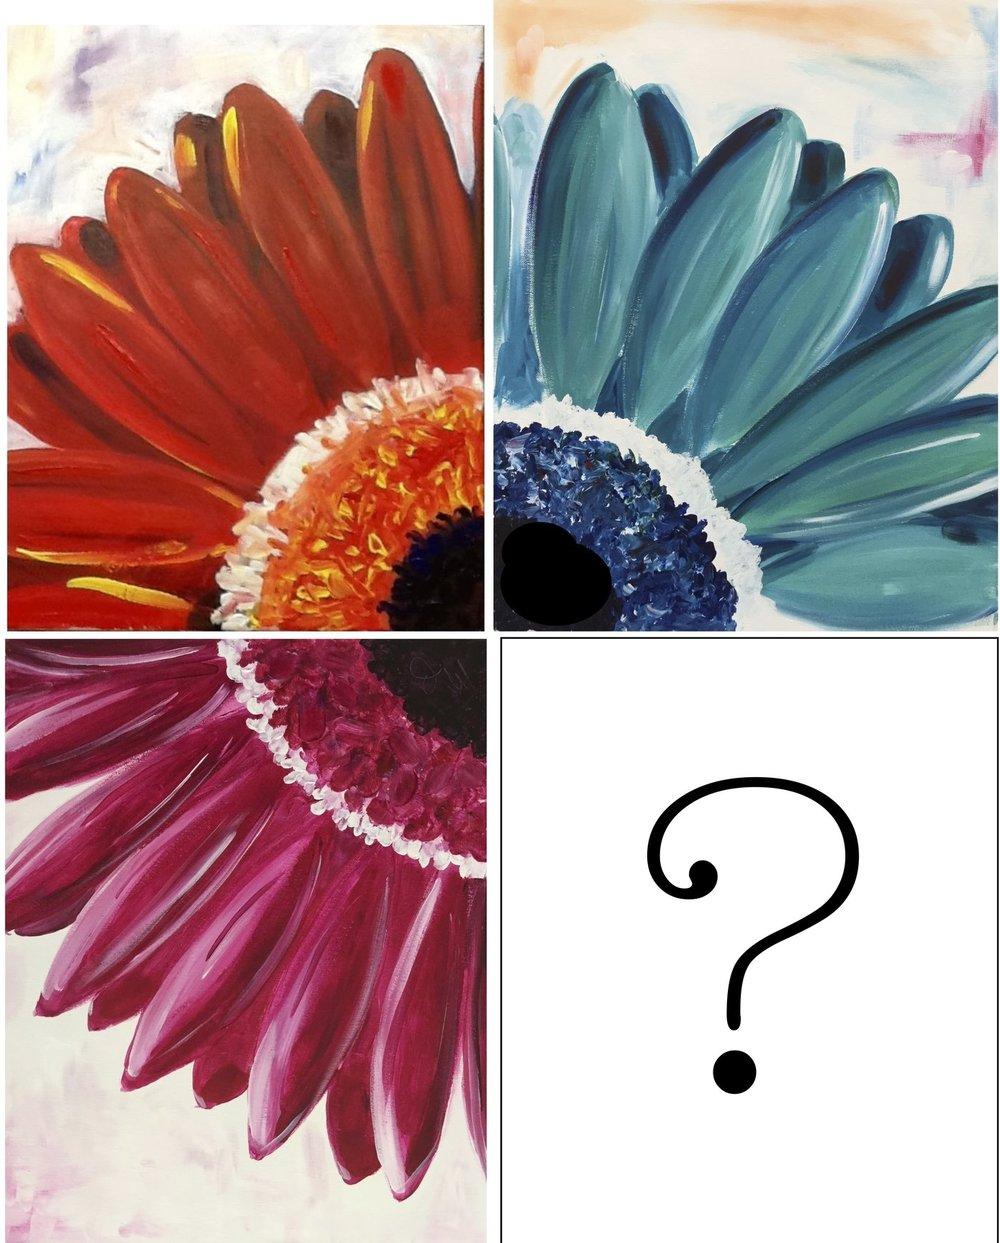 Pick a Daisy - Date: Monday, April 23Time: 6:00-8:00pmPlace: Barley StationPrice: $40/ guest*Drinks & food may be purchased from the Brew PubWhich colour daisy will you paint?